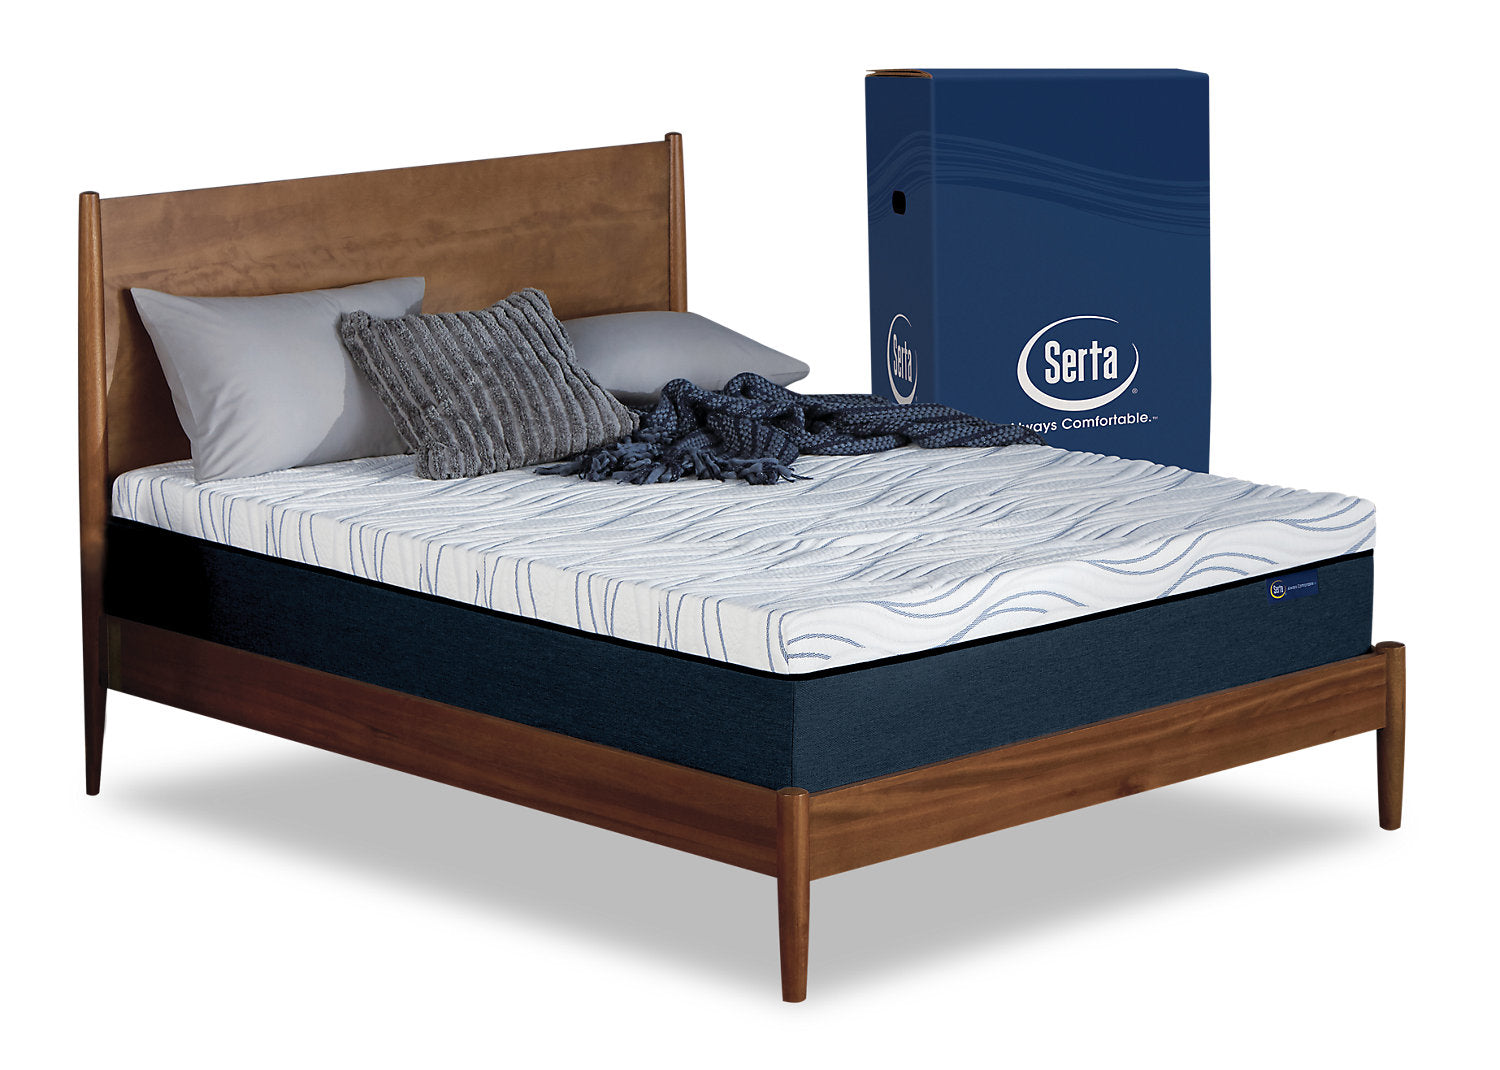 Serta Perfect Sleeper Express Queen Mattress In A Box With Boxspring